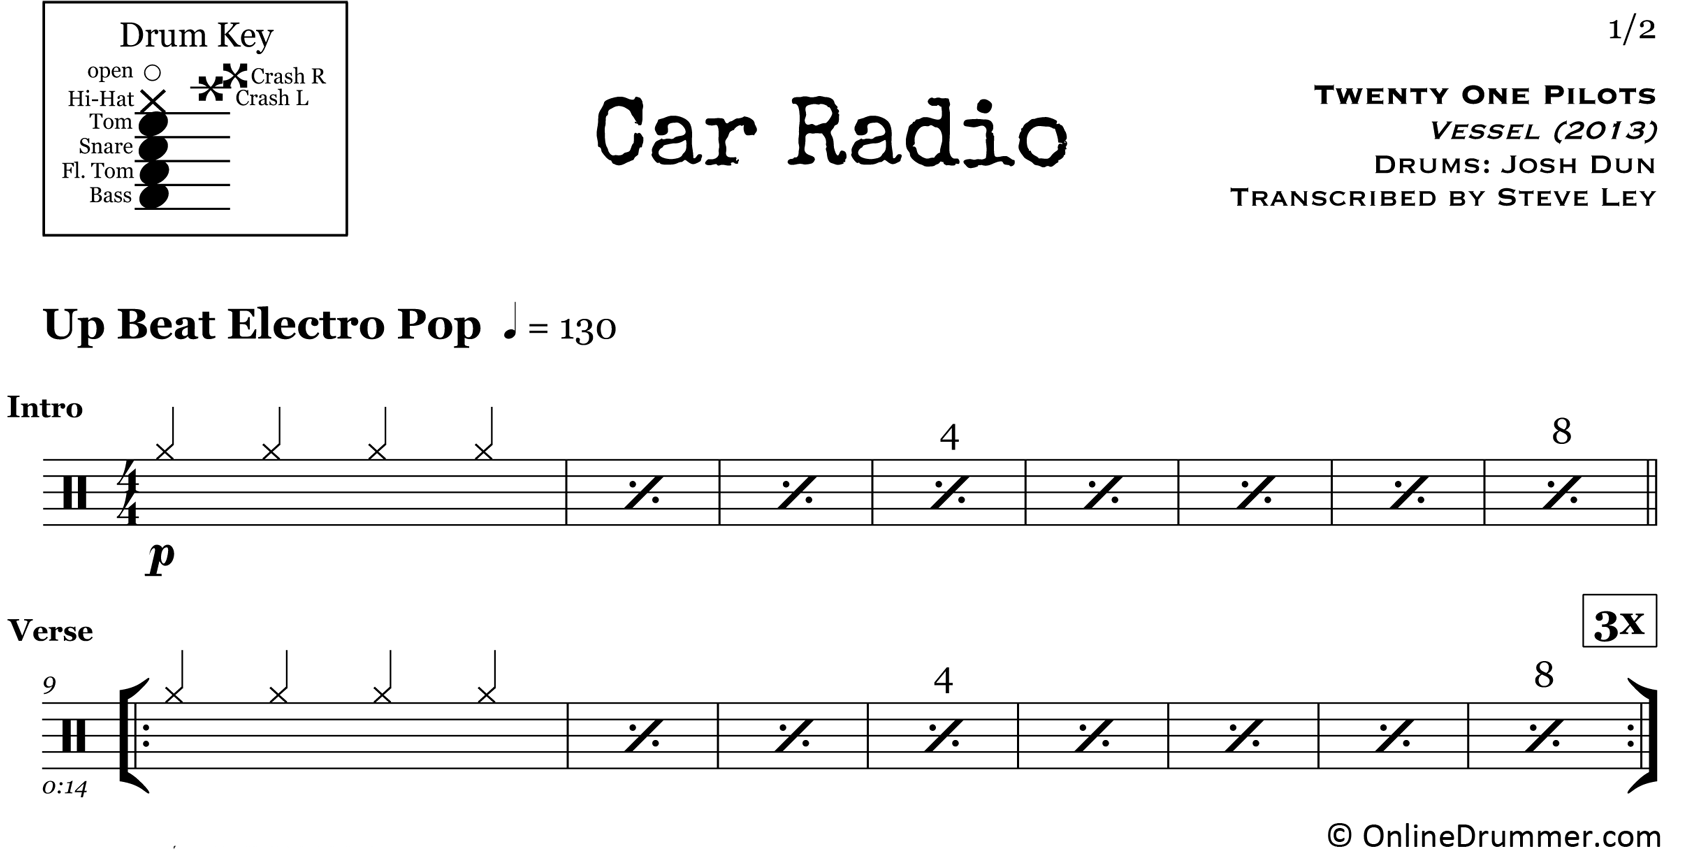 Car Radio - Twenty One Pilots - Drum Sheet Music